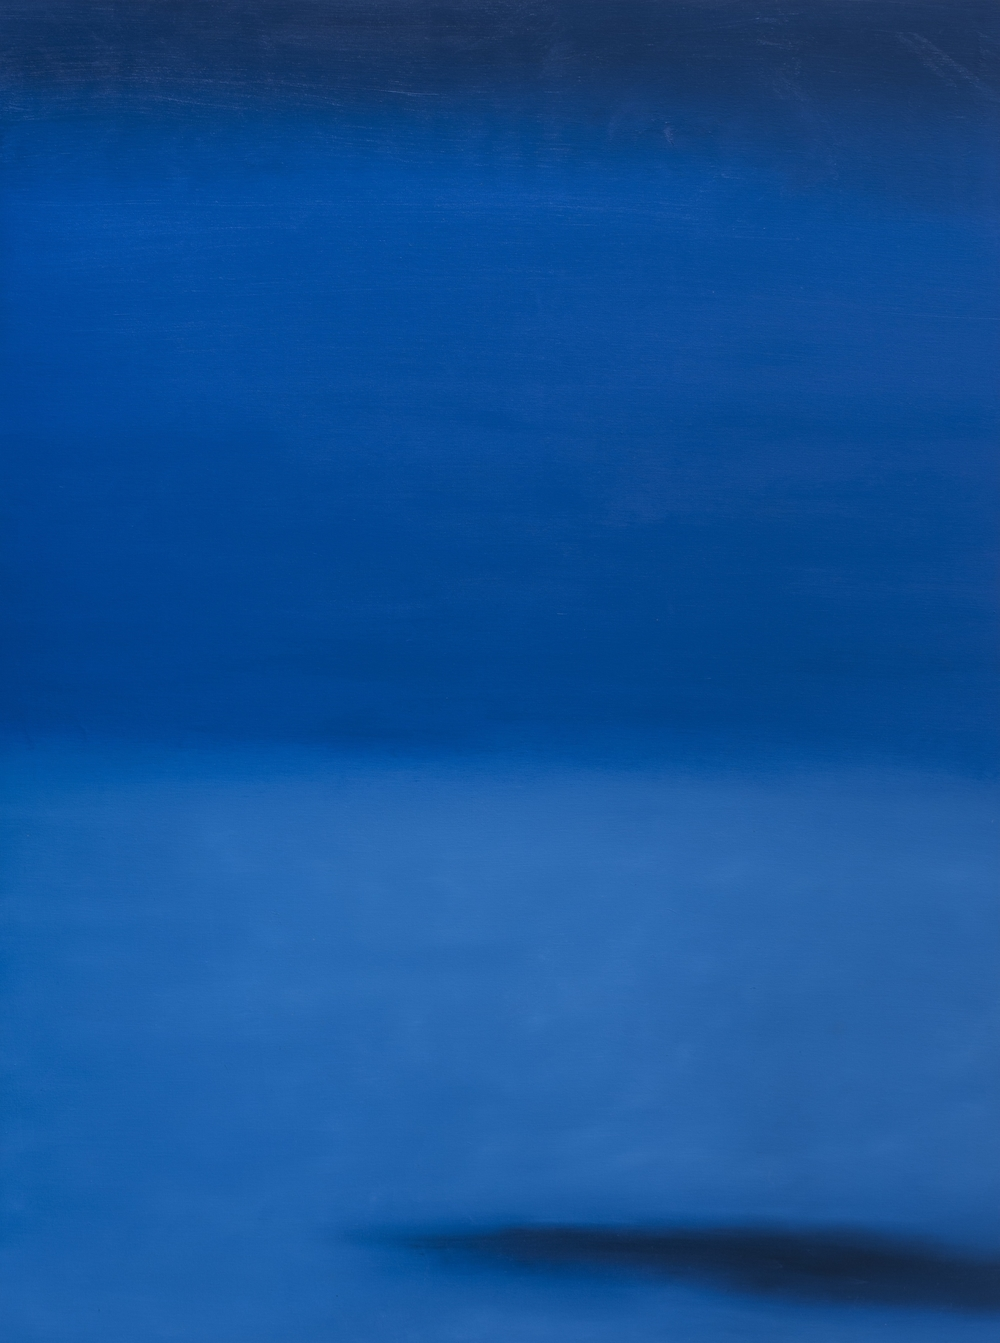 Oil on canvas / 2014 / Untitled / 140 x 104 cm